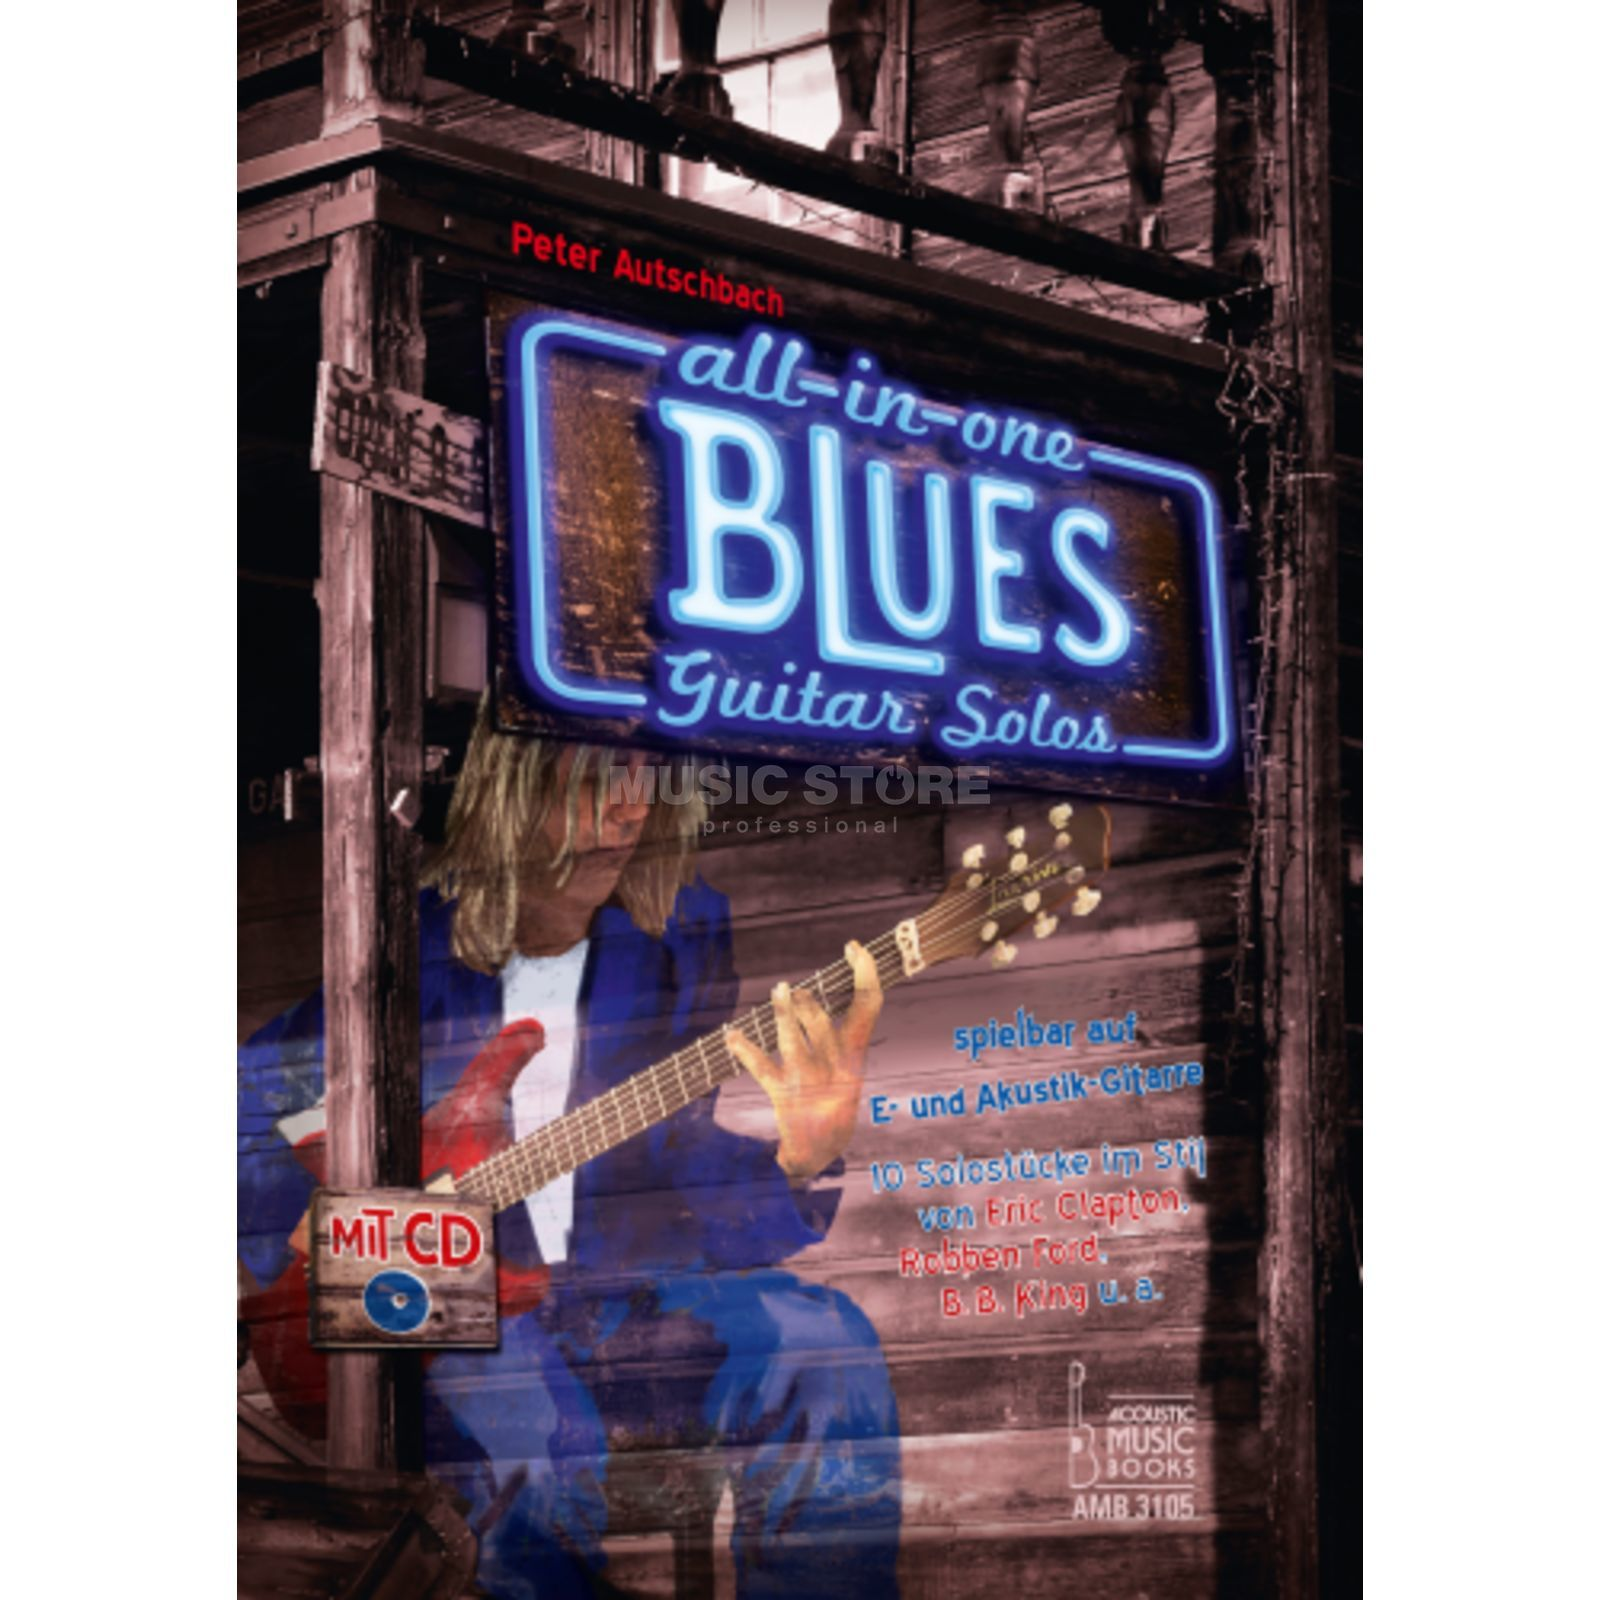 Acoustic Music Books All in One Blues Guitar Solos Peter Autschbach, mit CD Produktbild